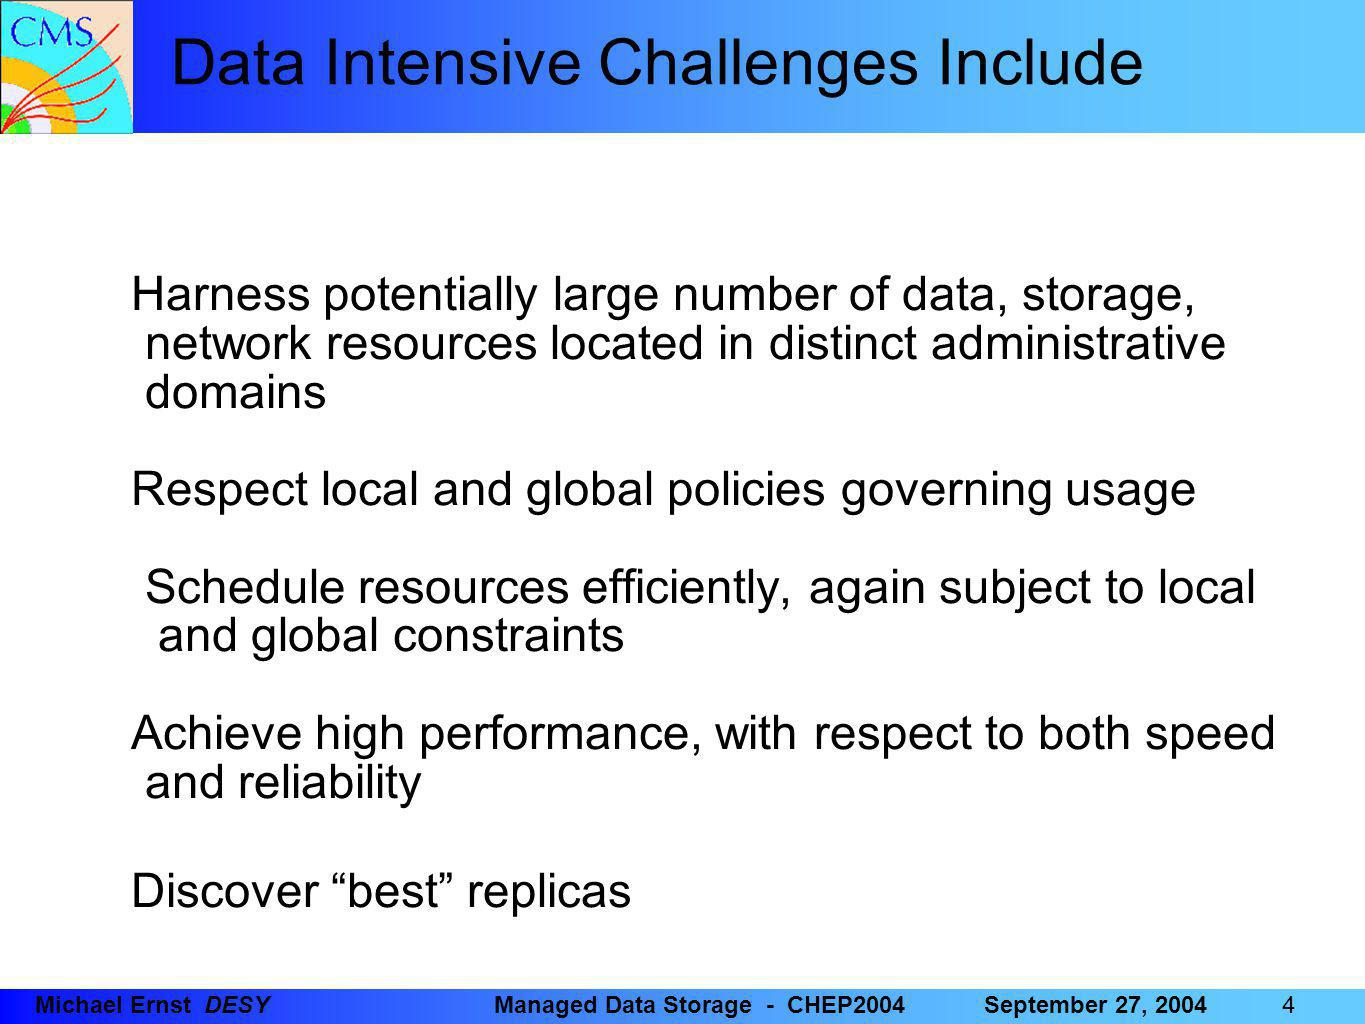 25 Michael Ernst DESYManaged Data Storage - CHEP2004September 27, 2004 Some things to improve … Srmcp batches: Transfer scheduler aborts all if single transfer fails (solved in latest version) Client failure: Supposed to retry transfer in case of a pool failure, selecting a different pool (solved) Space reservation: Prototype available for SC2003; needs to be integrated with SRM v1.x (planned for Q4/2004) Information Provider: Need a tightly integrated information provider for optimization